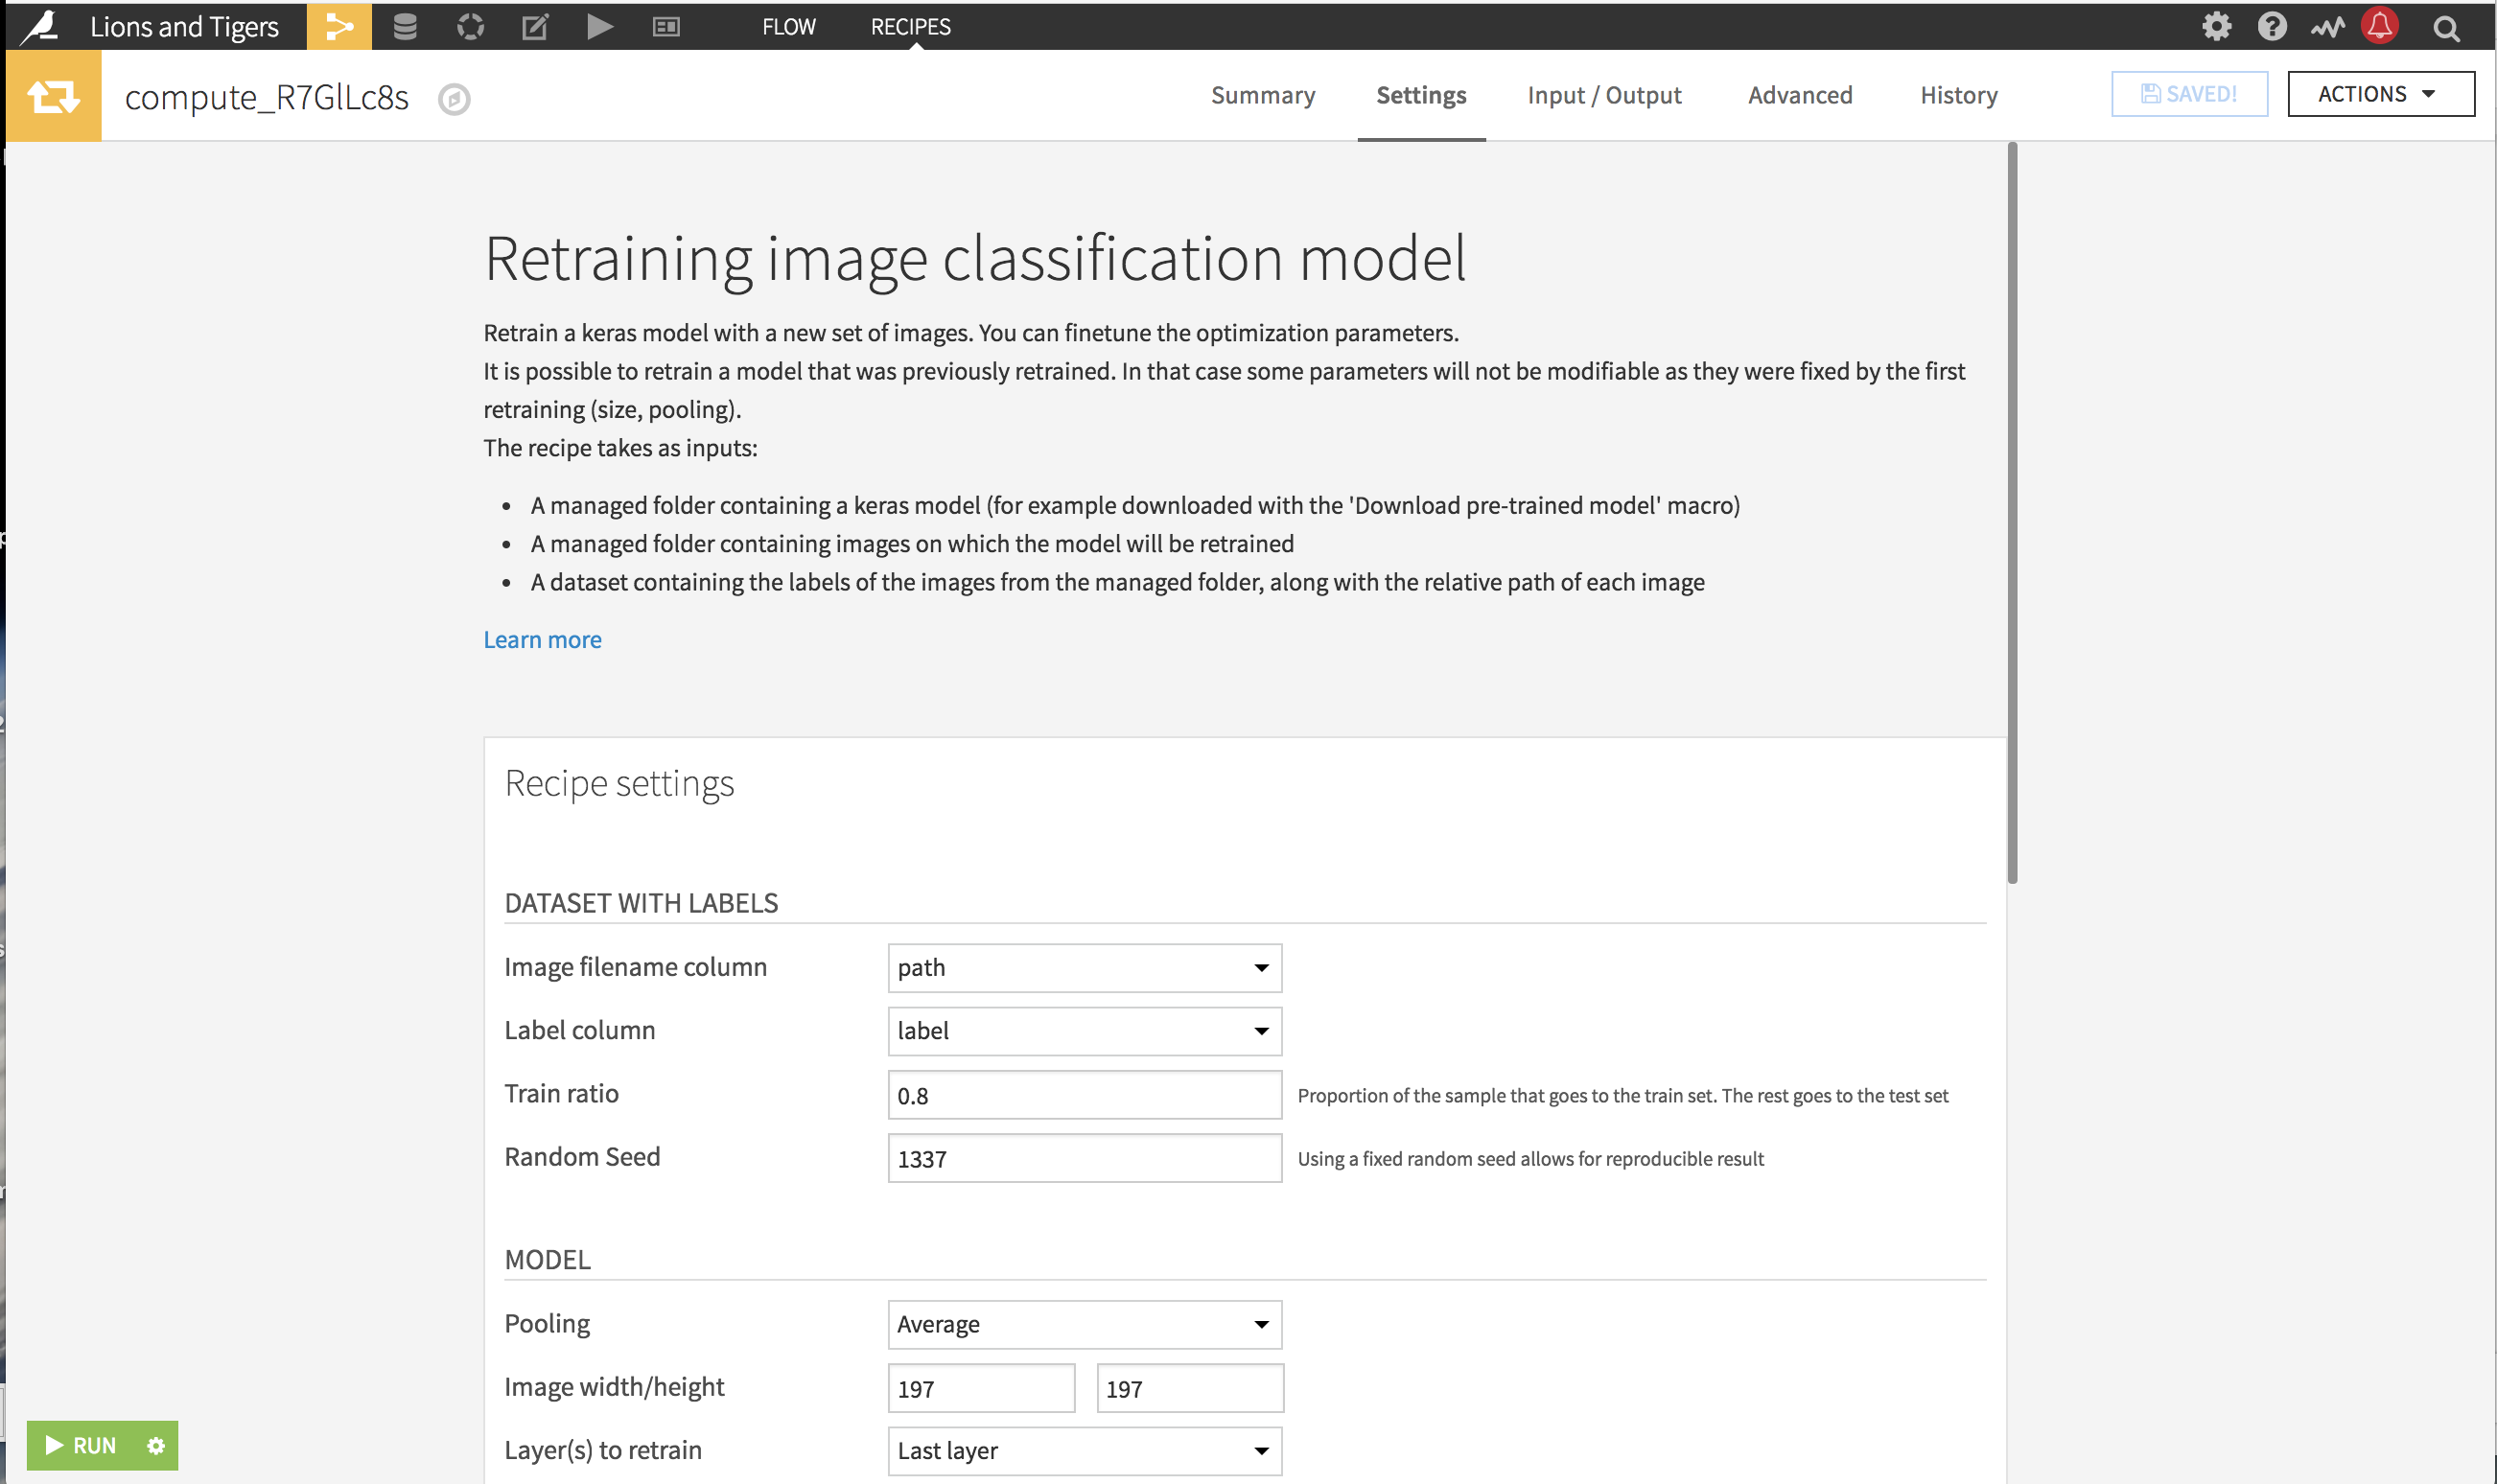 Retraining image classification settings